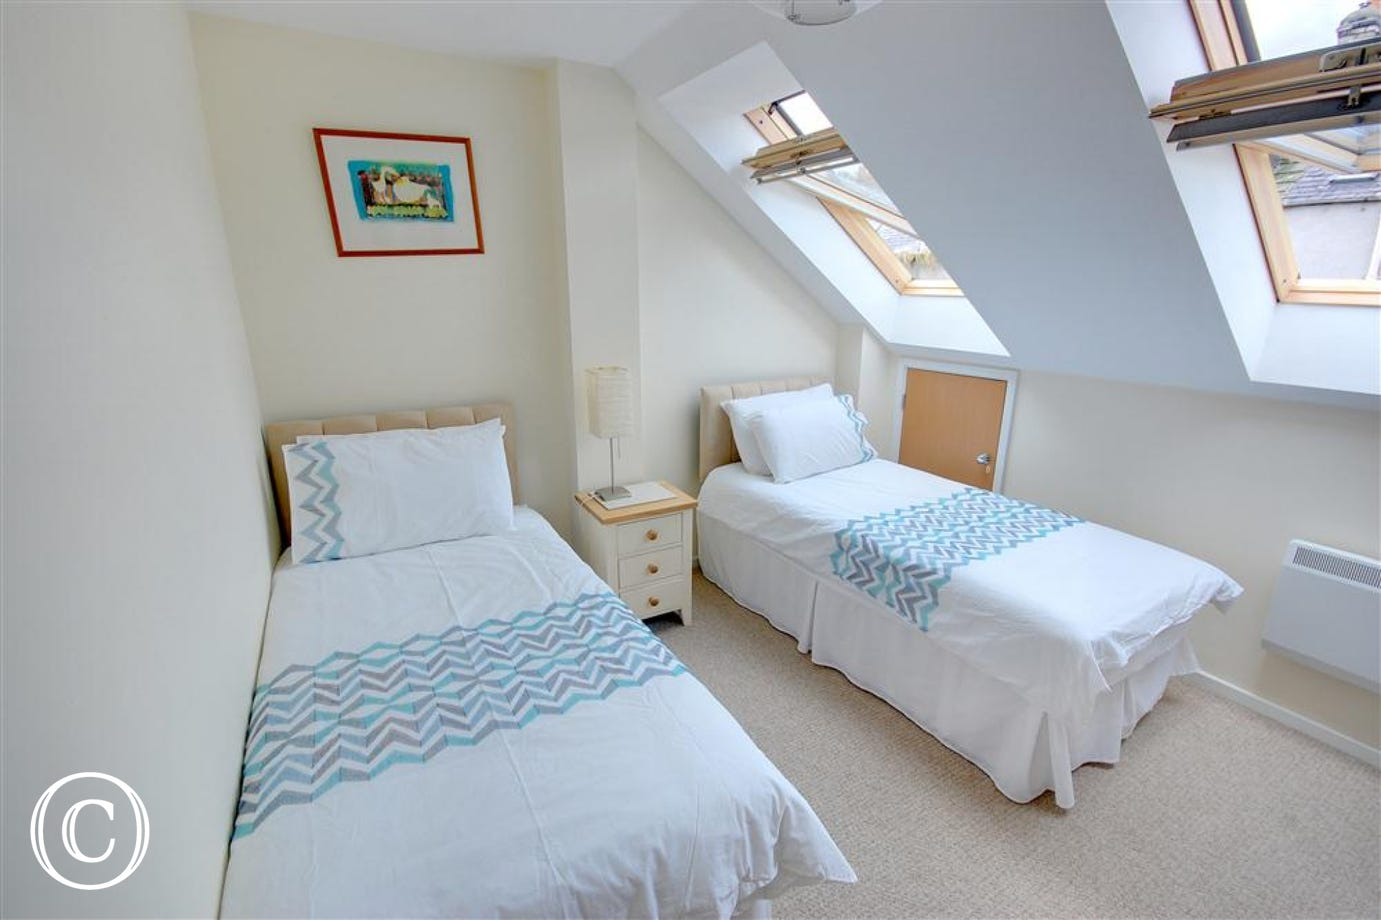 Bright and airy third Bedroom with three single beds. The Velux windows let plenty of light into this room.